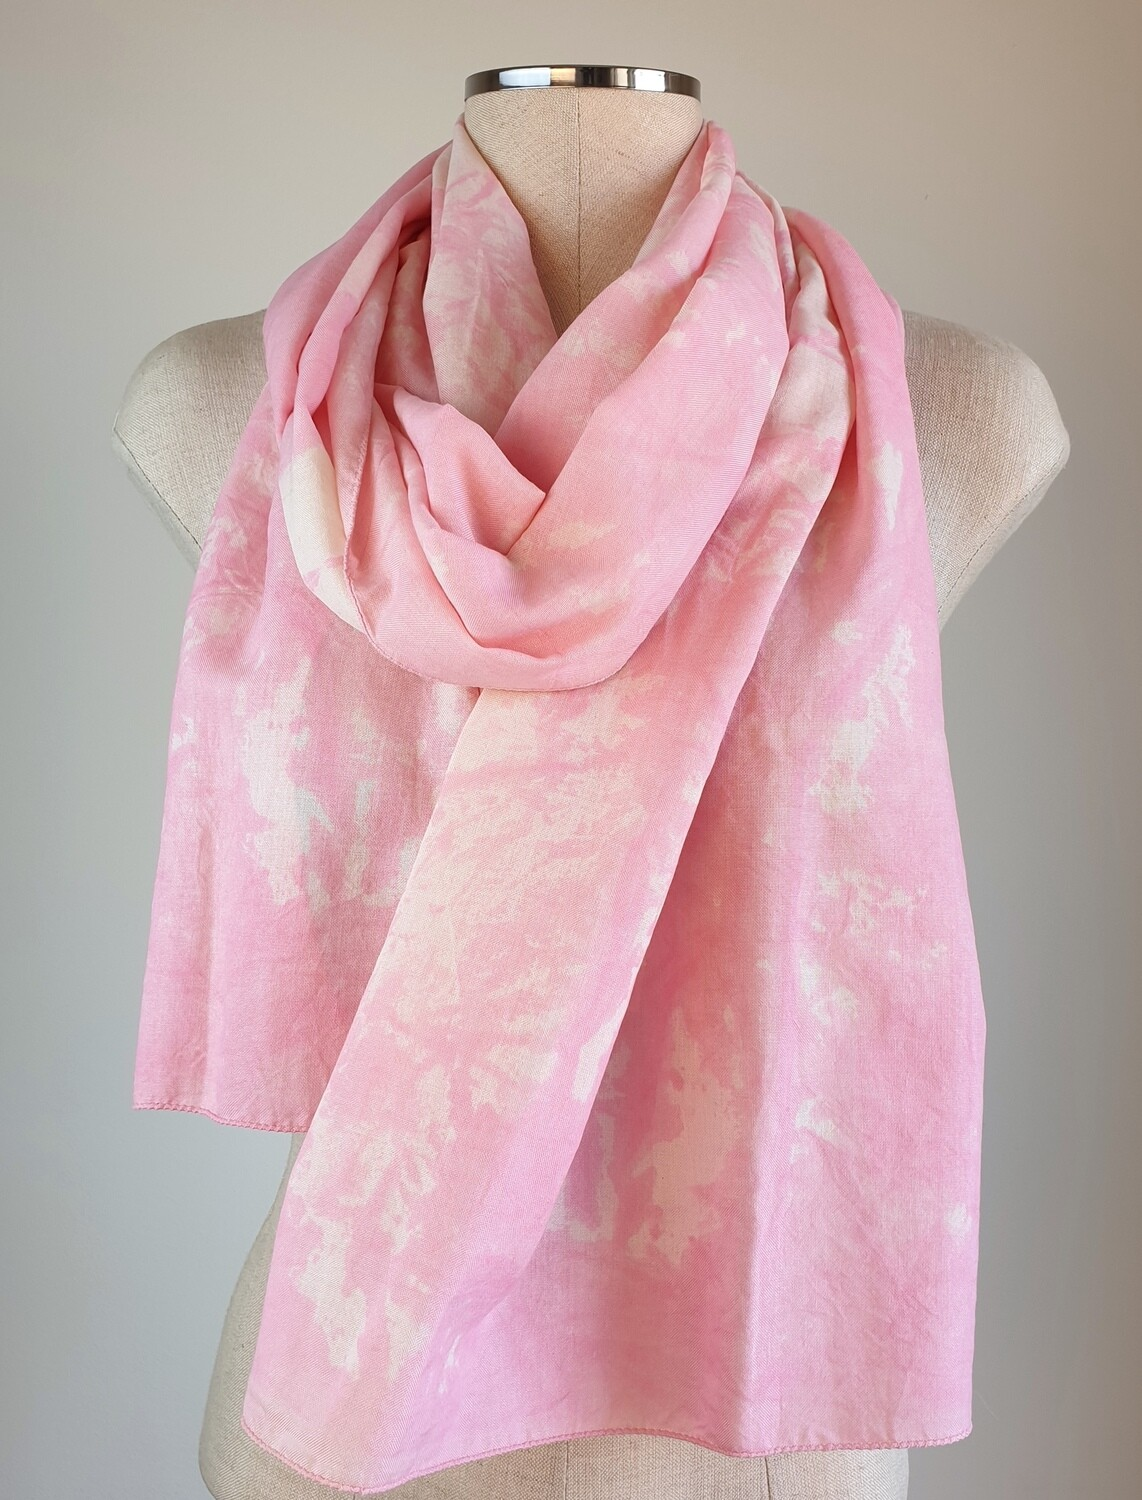 Hand-dyed Ombre Scarf: Rose Quartz